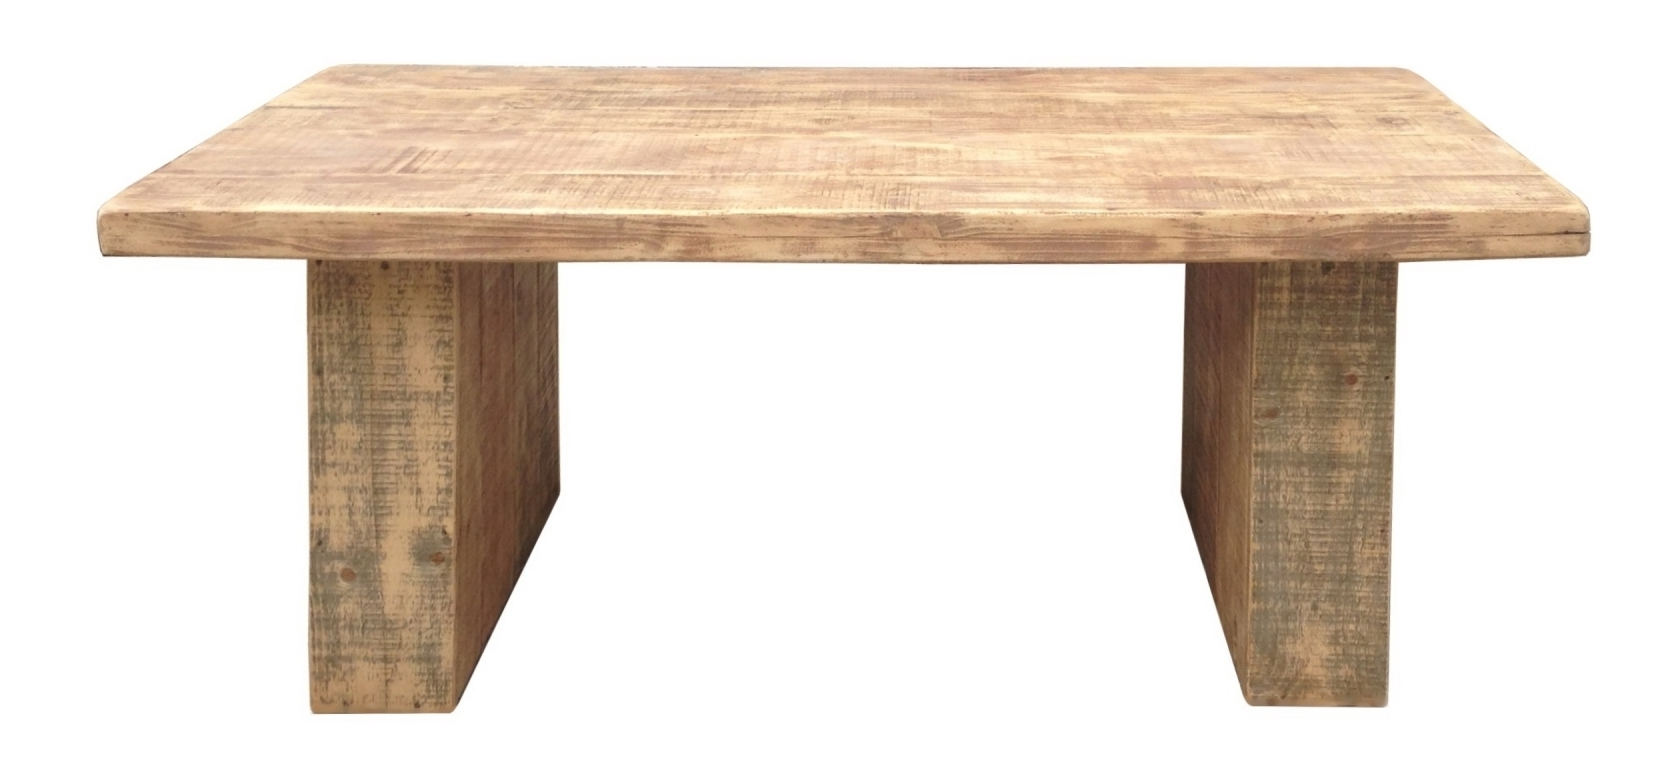 Pine Dining Table Thick Top, Massive Legs – Umaid Craftorium Pertaining To Popular Dining Tables With Large Legs (Gallery 15 of 25)